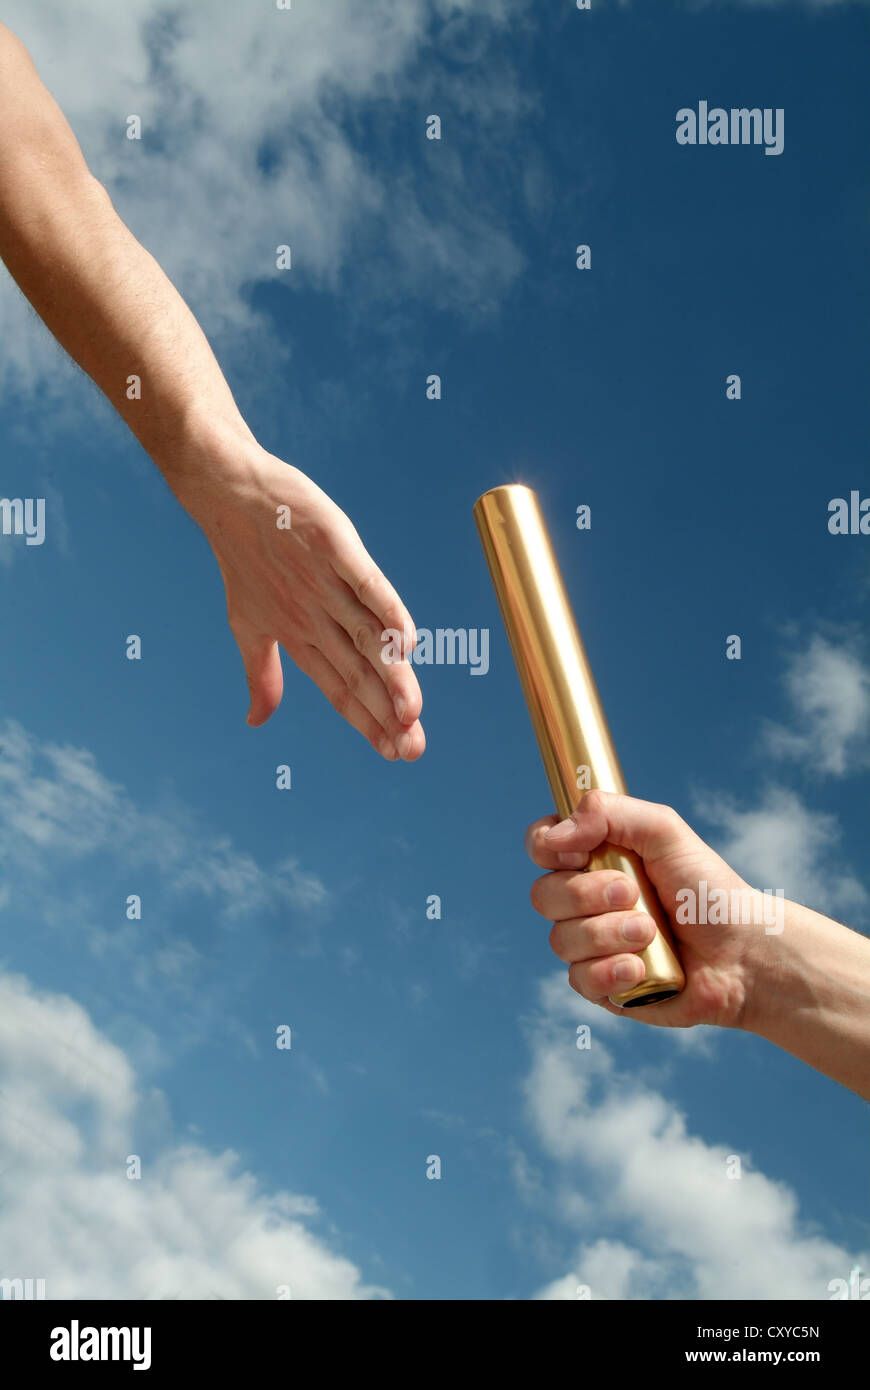 Relay race, detail of athletes hands during the handover of the baton - Stock Image